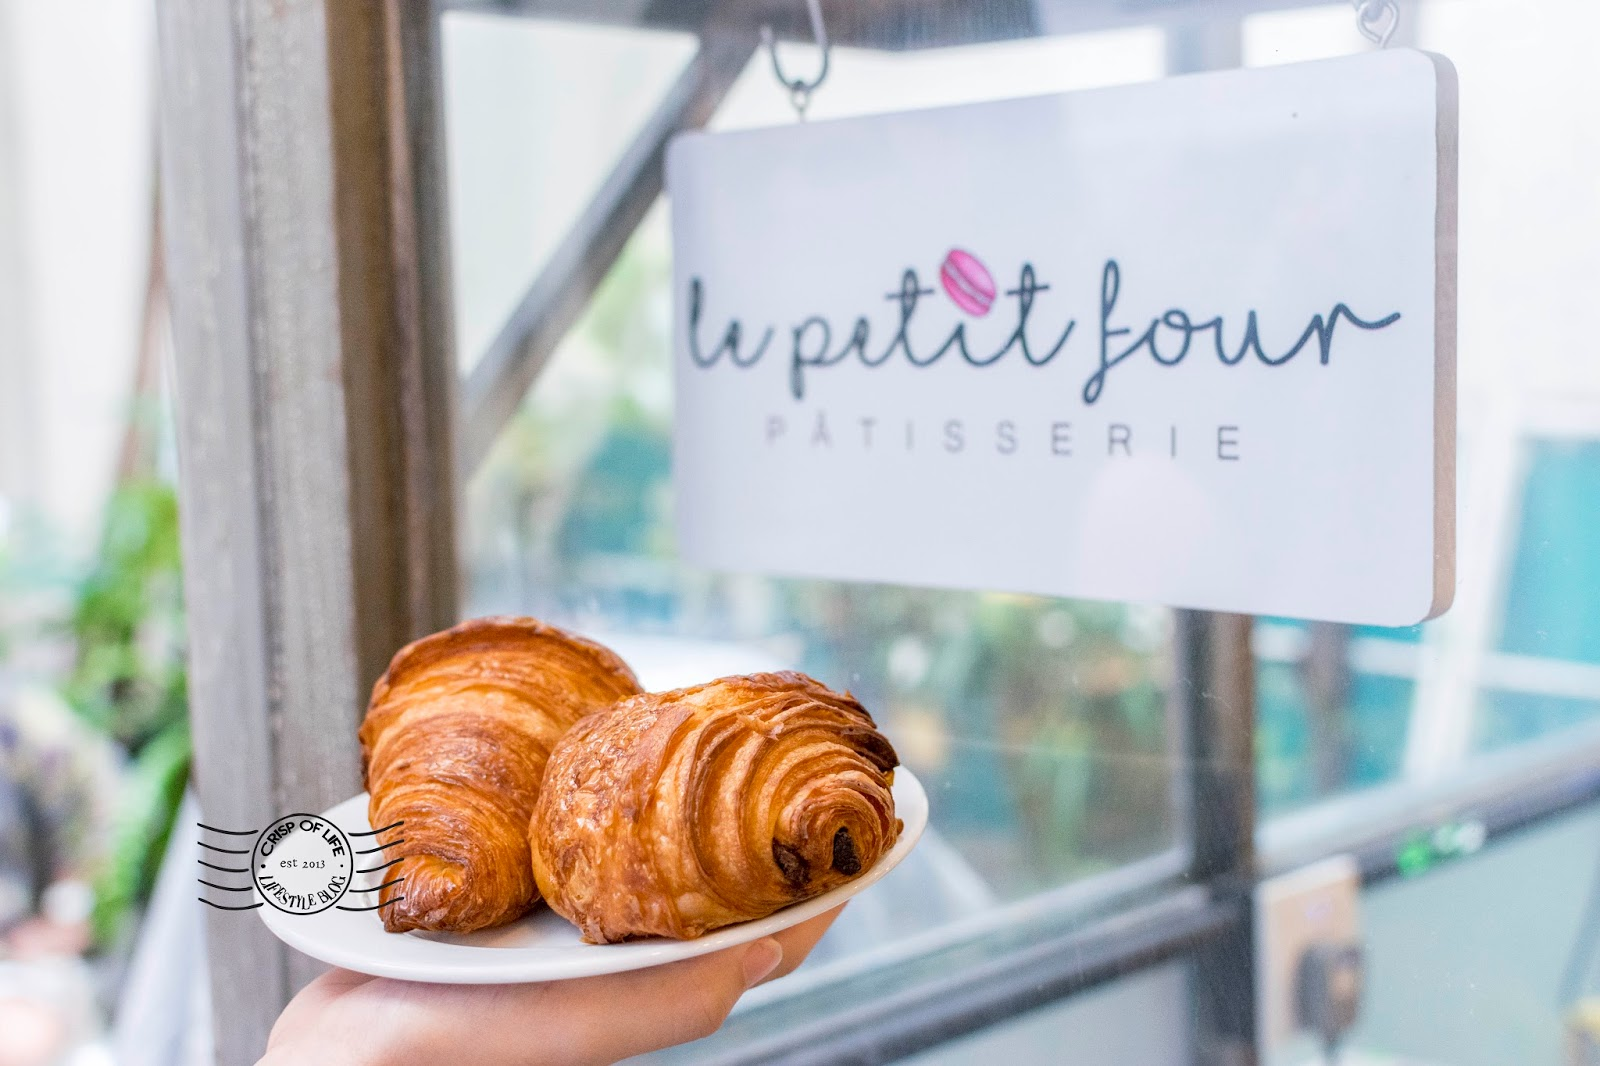 Coffee Addict & Le Petit Four Patisserie @ Hutton Lane, Georgetown, Penang